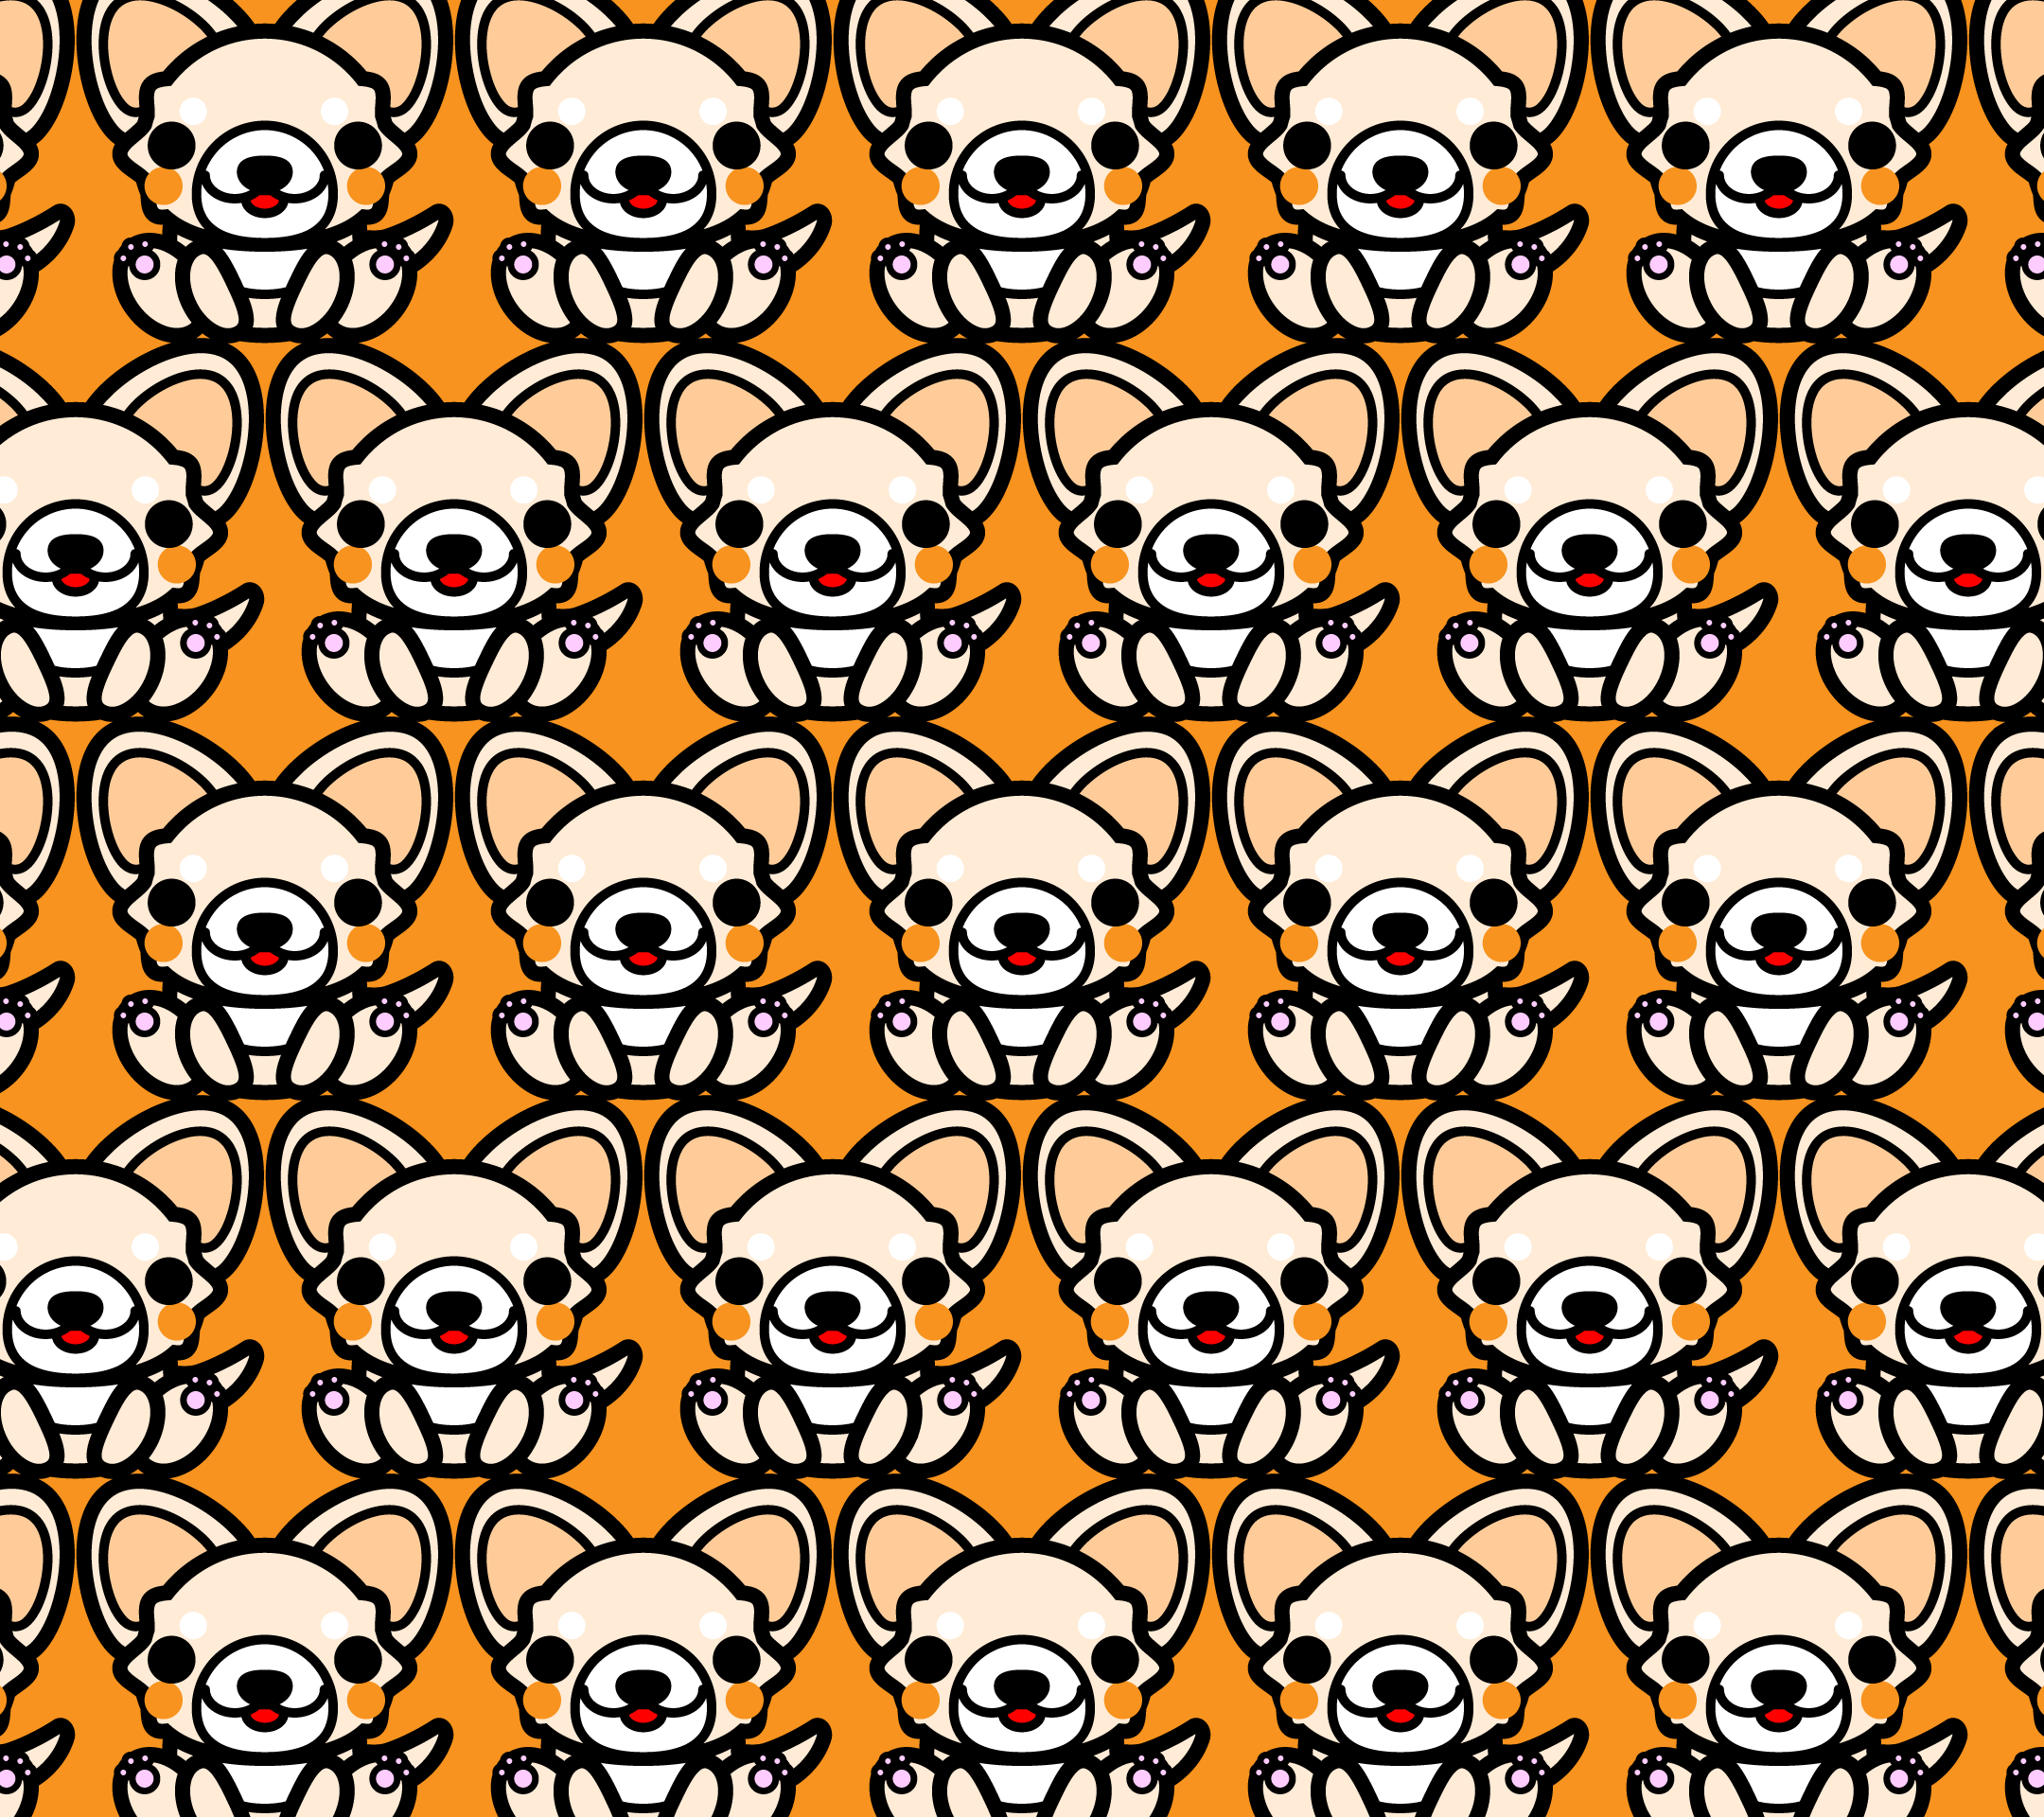 wallpaper4_sitchihuahua-fiill-orange-android